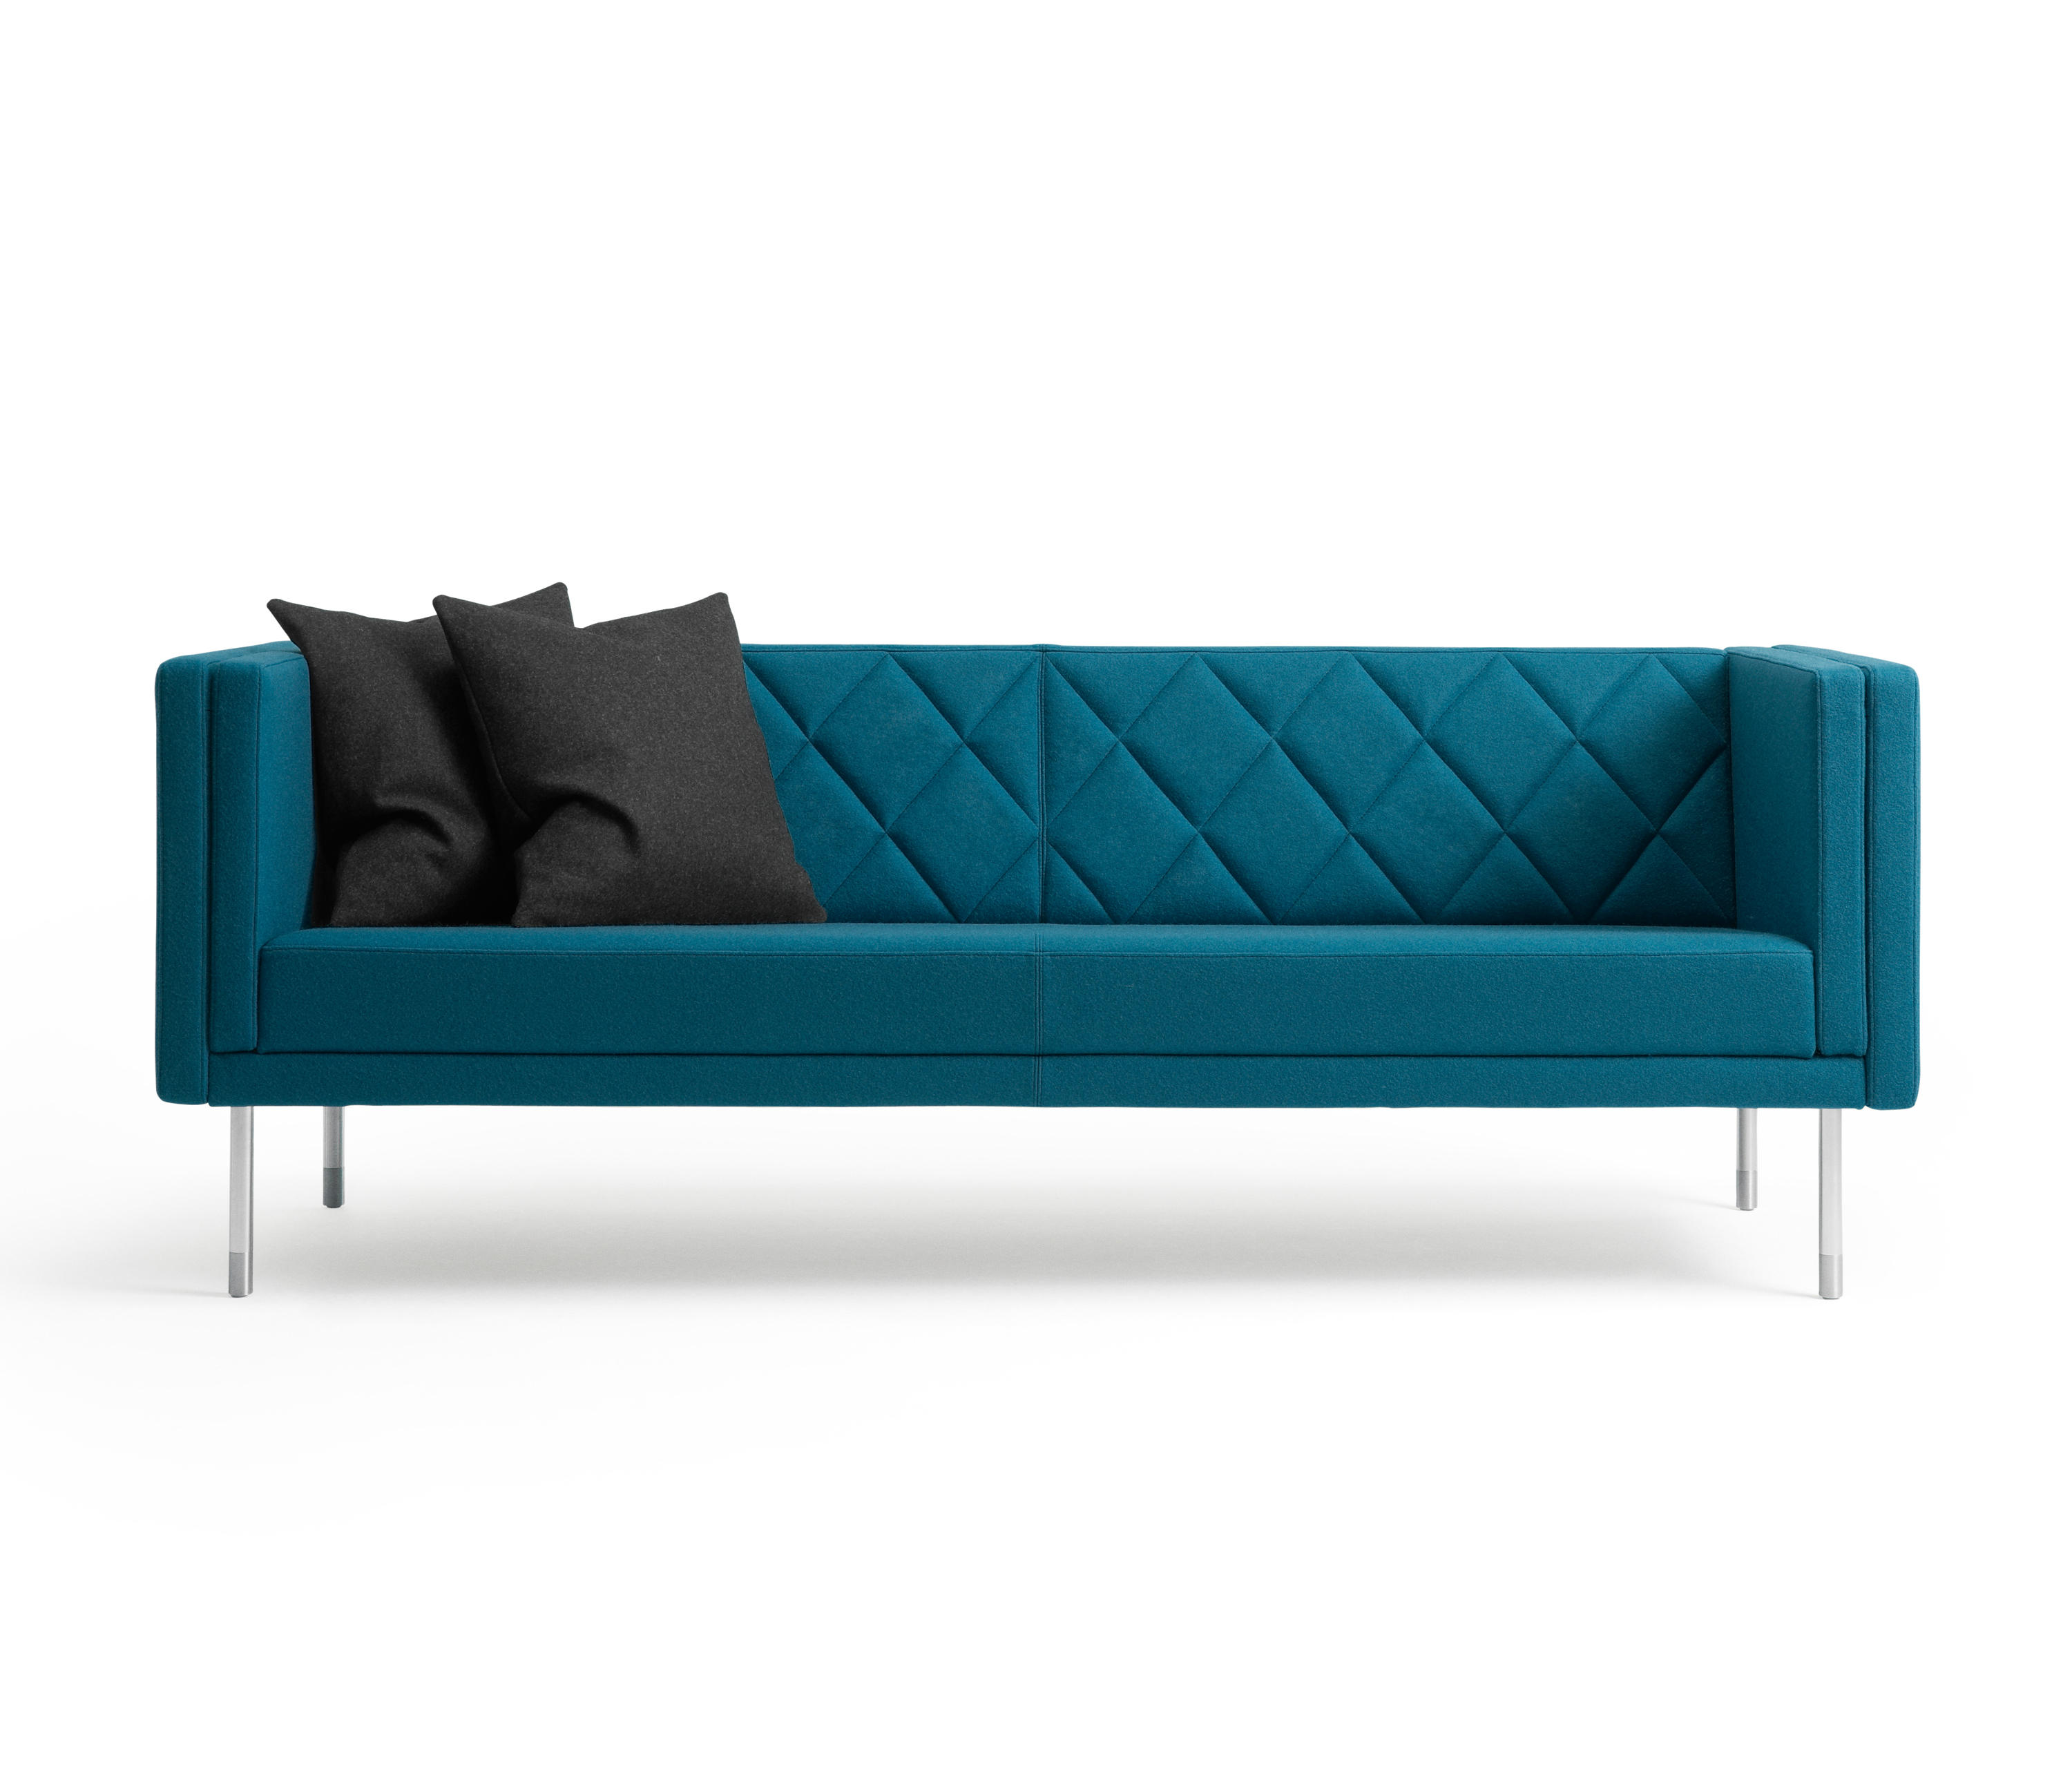 Harlequin sofa hereo sofa for Chaise longue halle